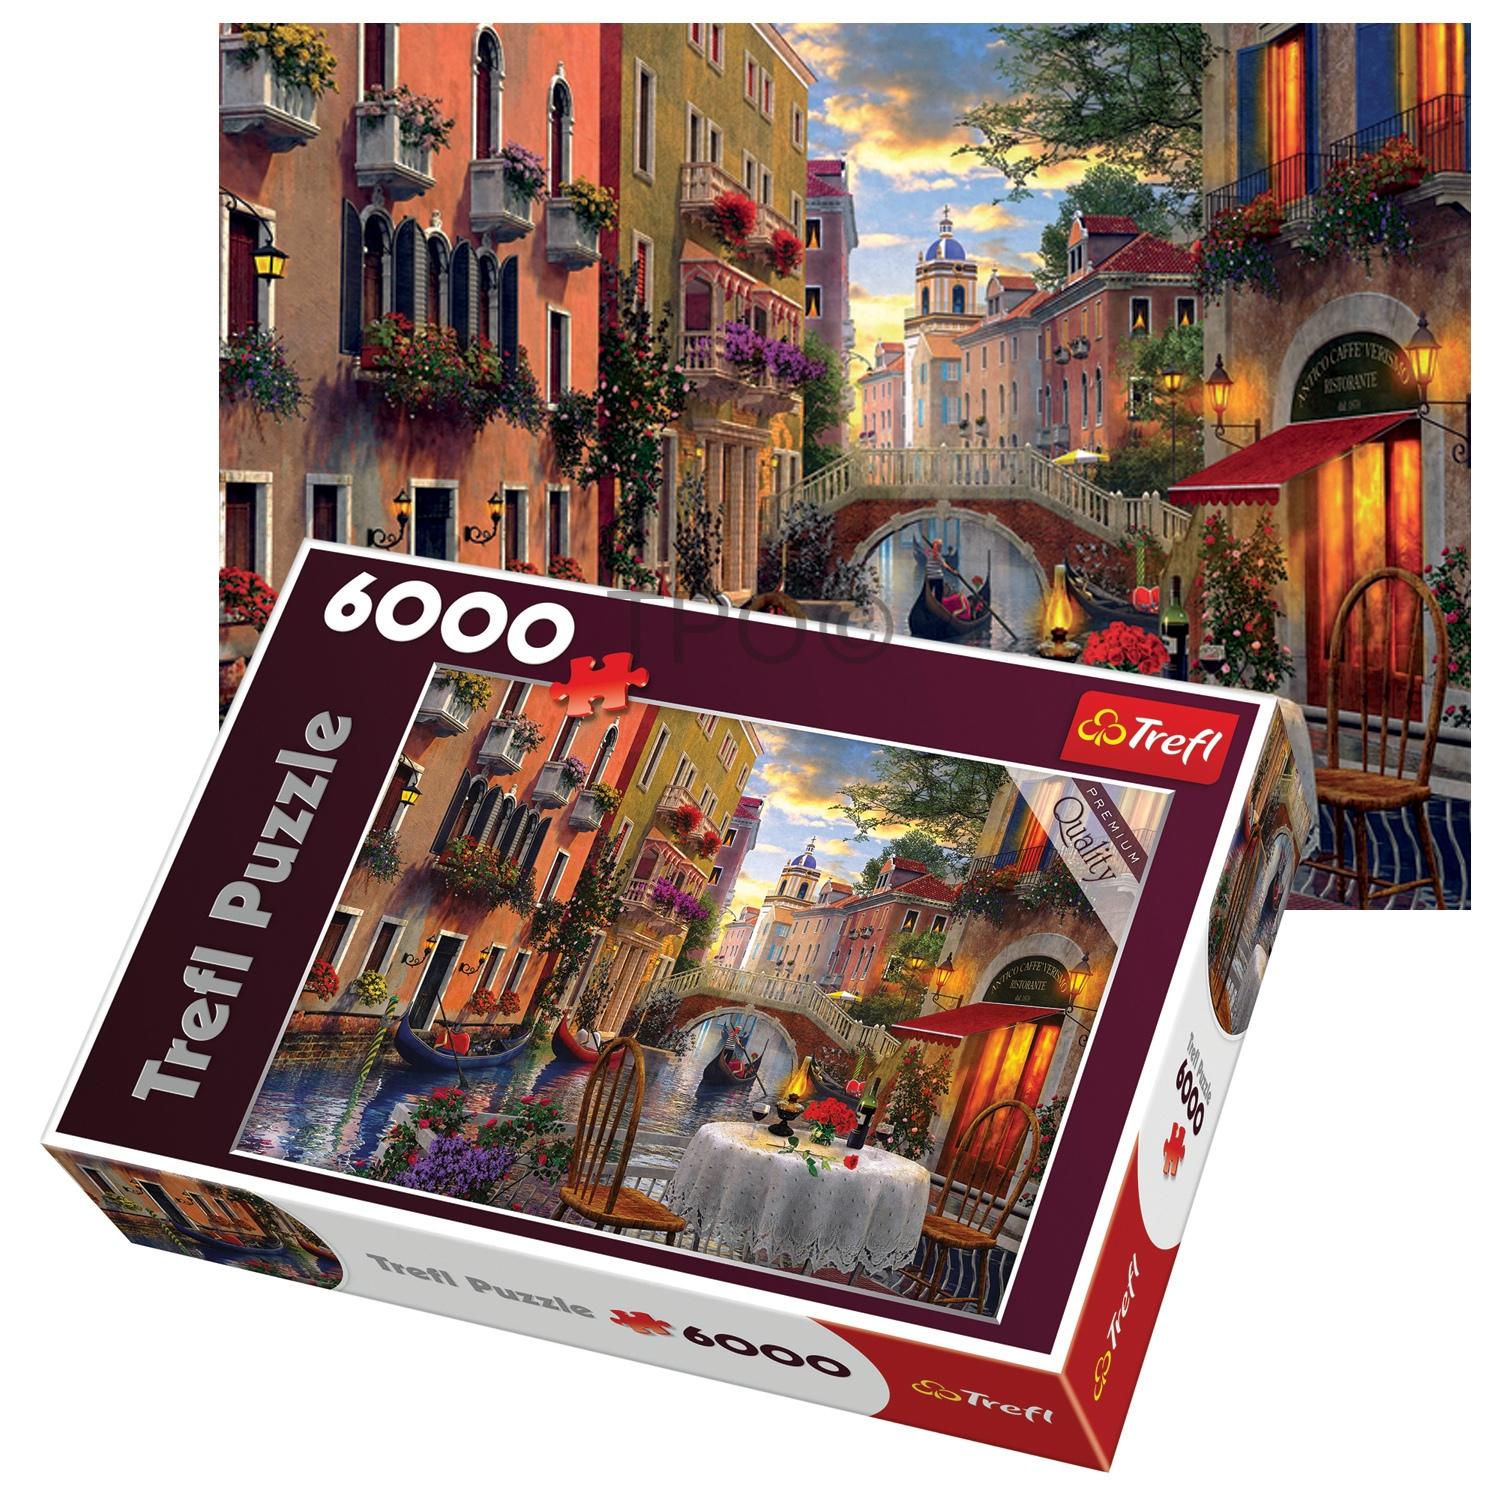 Trefl 6000 Piece Adult Large Romantic Venice Supper Meal